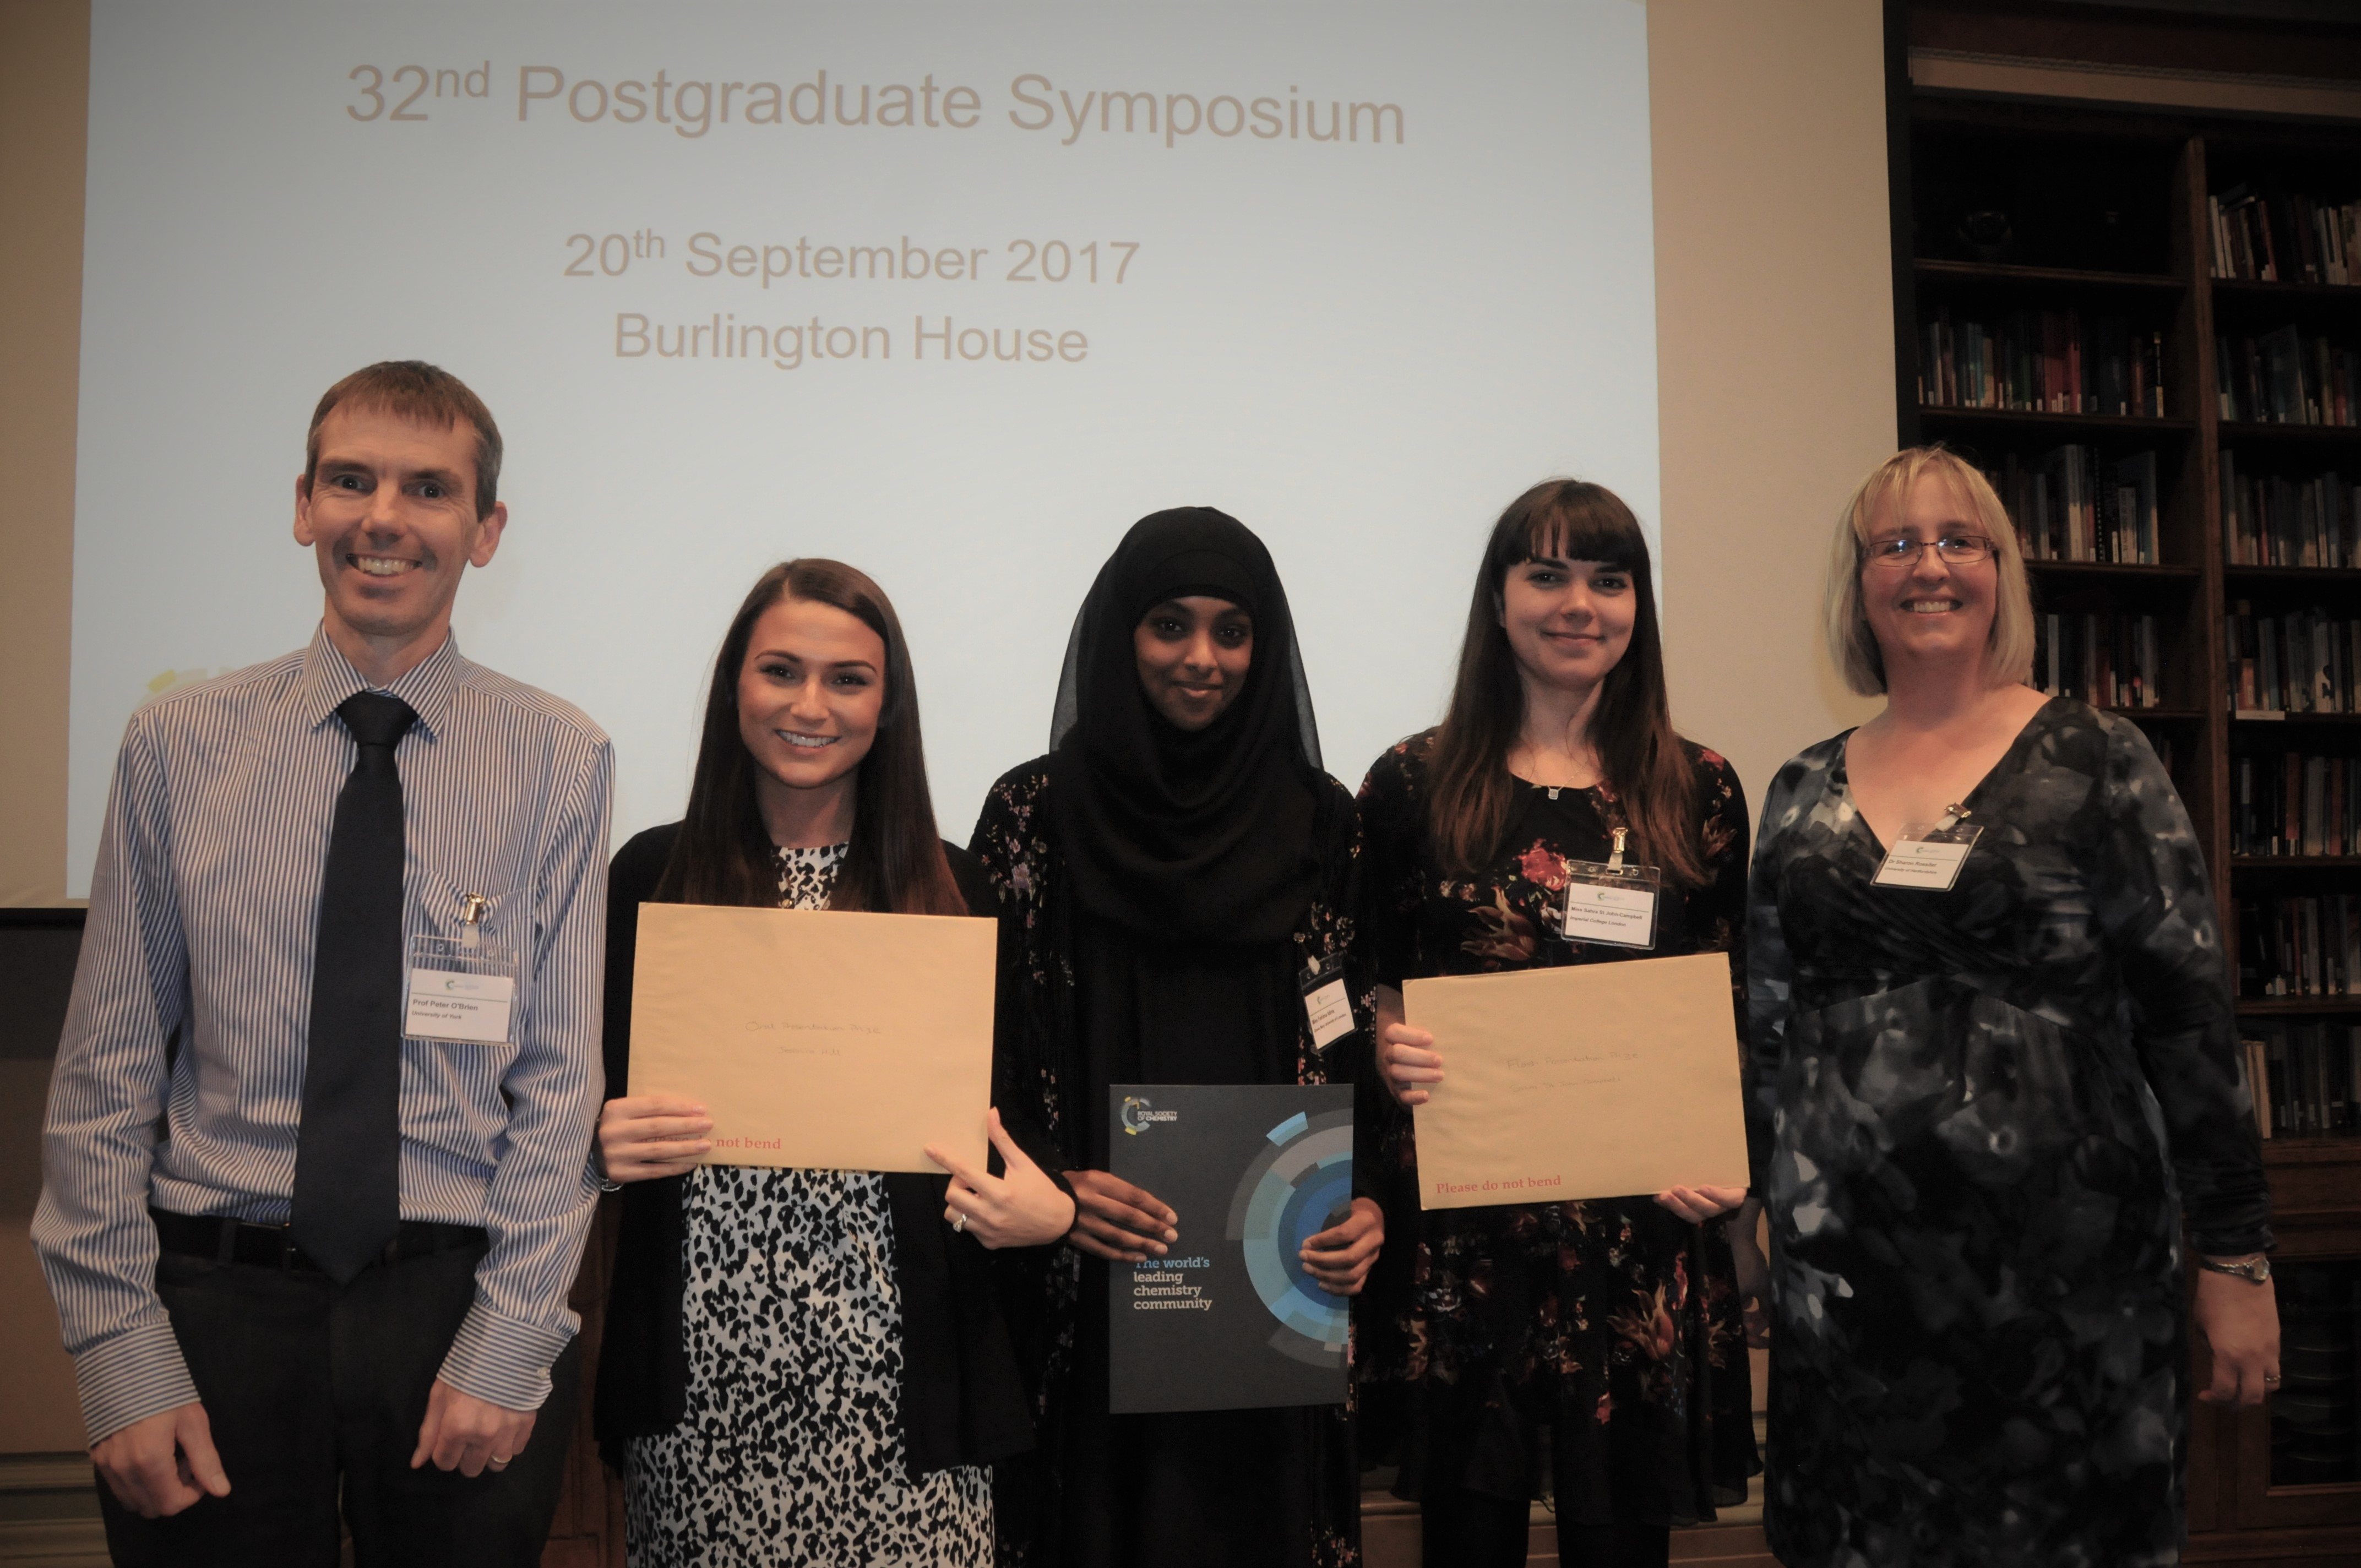 The three prize winners - Jessica Hill (University of Bristol), Fahima Idiris (Queen Mary University of London) and Sahra St John-Campbell (Imperial College London), flanked by the current Chair (Professor Peter O'Brien) and Secretary (Dr Sharon Rossiter).